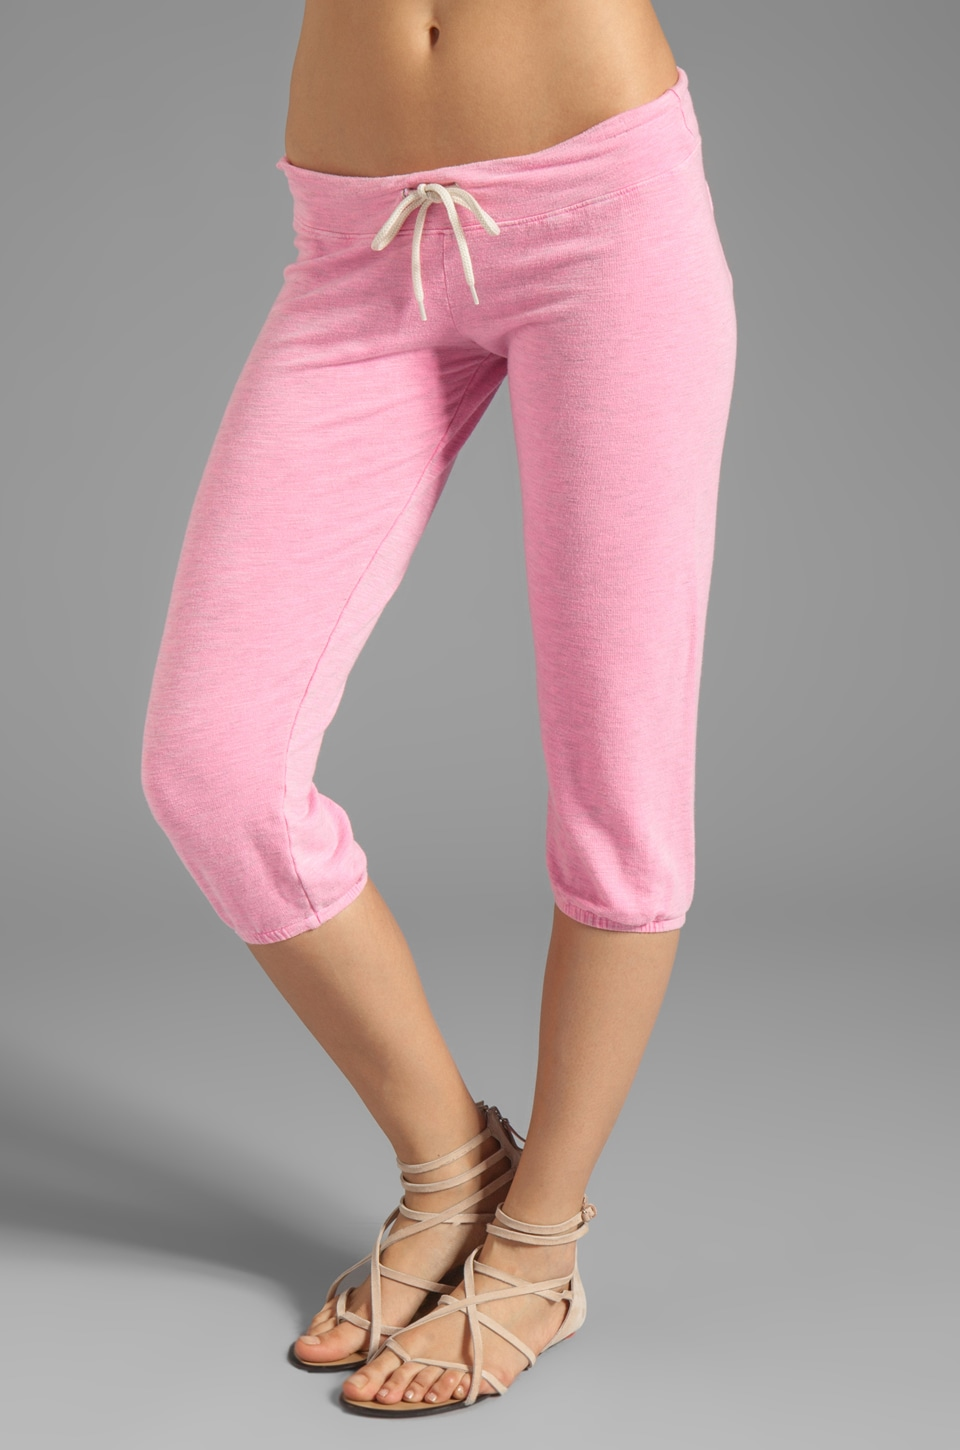 MONROW French Terry 3/4 Vintage Sweats in Neon Pink